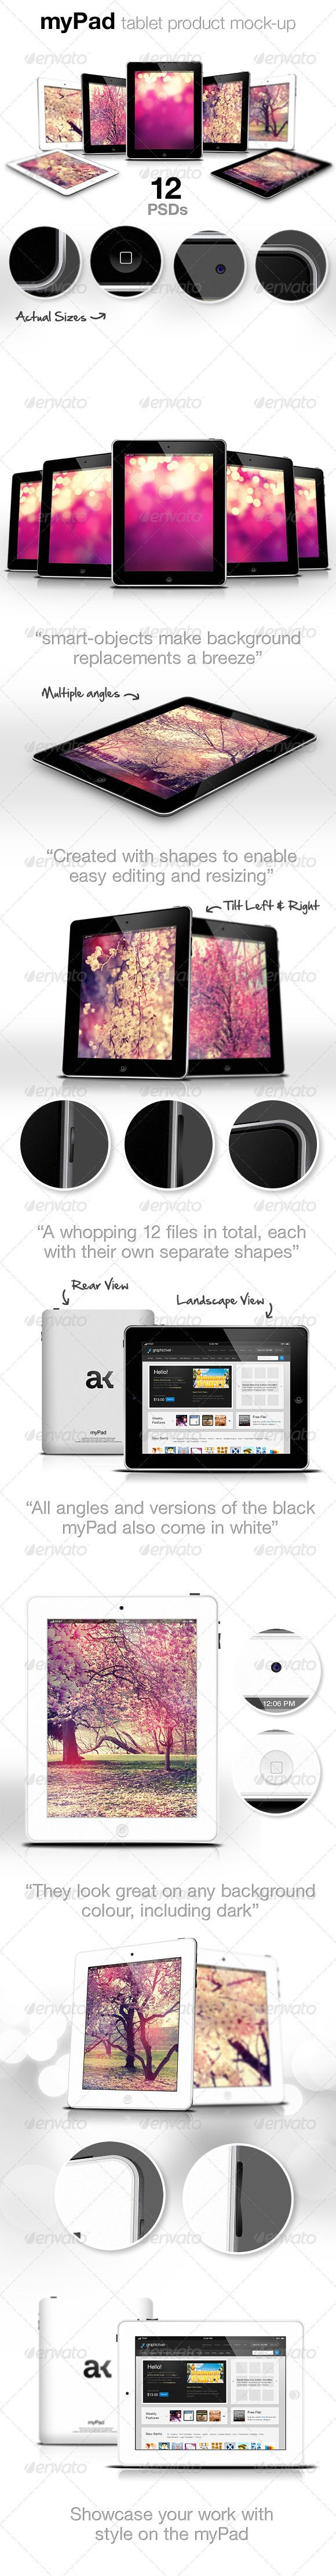 myPad: Web/App Showcase Tablet Pad Mockup Download here: https://graphicriver.net/item/mypad-webapp-showcase-tablet-pad-mockup/2201391?ref=KlitVogli